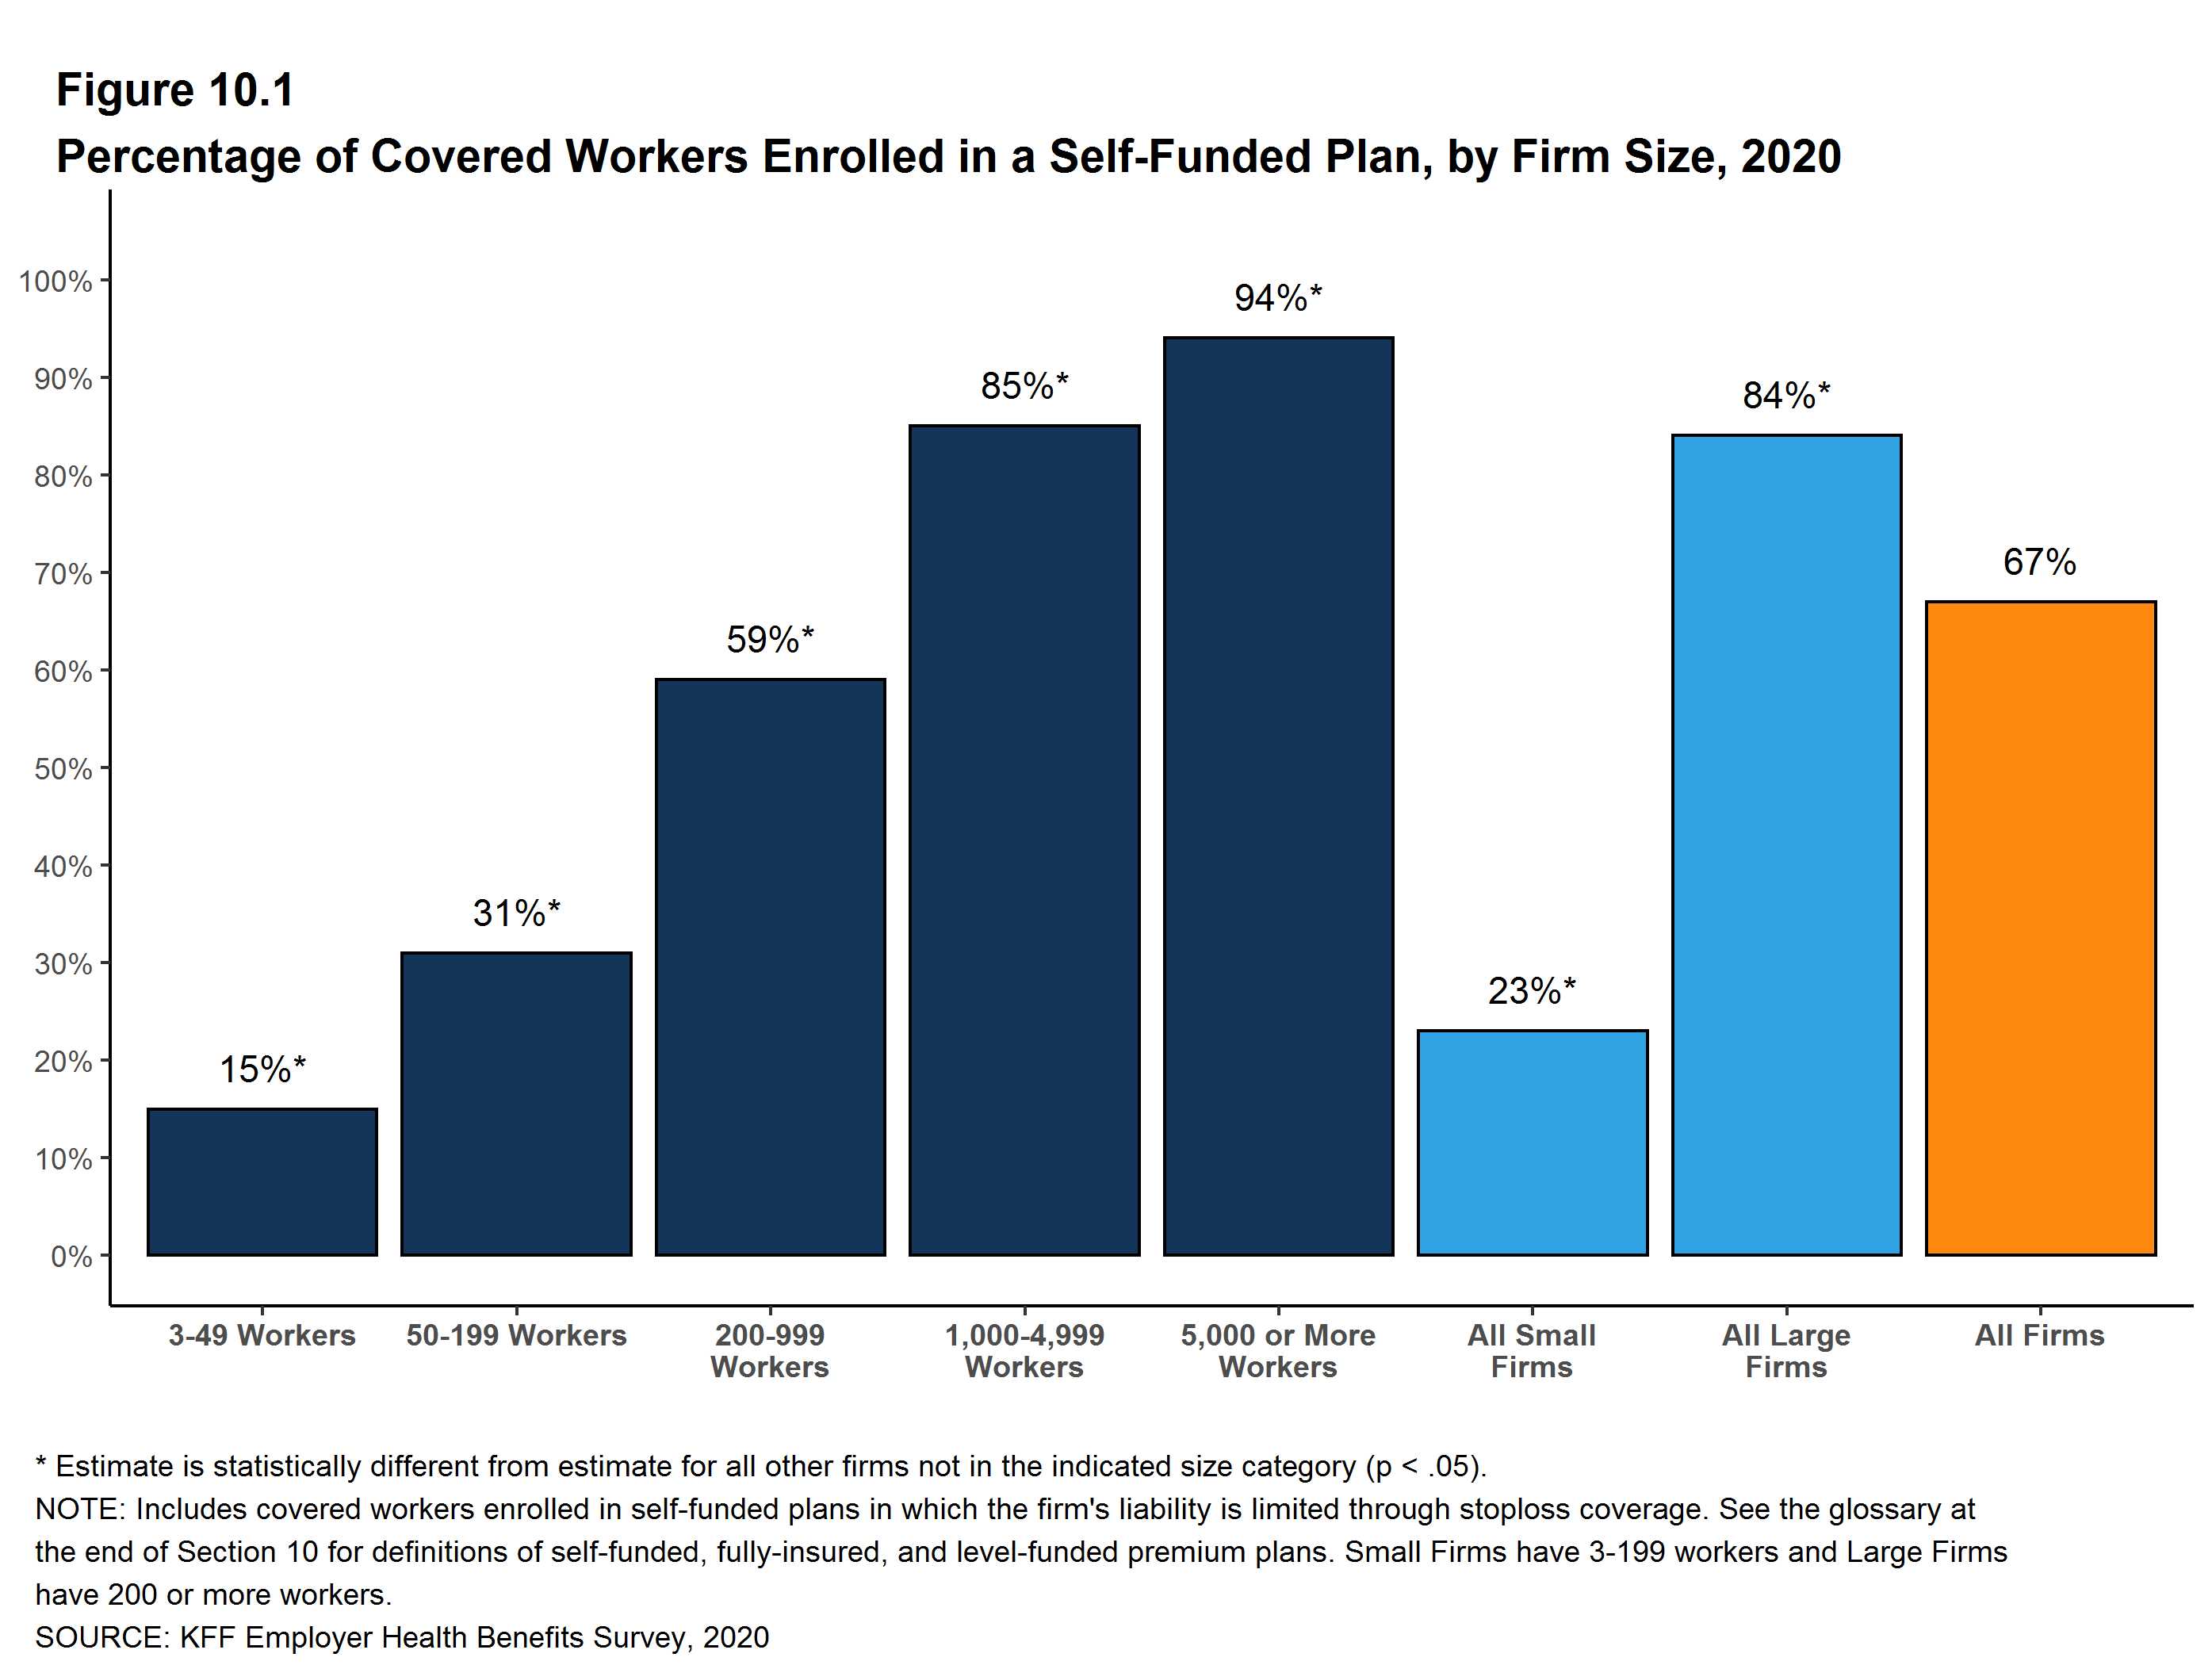 Figure 10.1: Percentage of Covered Workers Enrolled in a Self-Funded Plan, by Firm Size, 2020